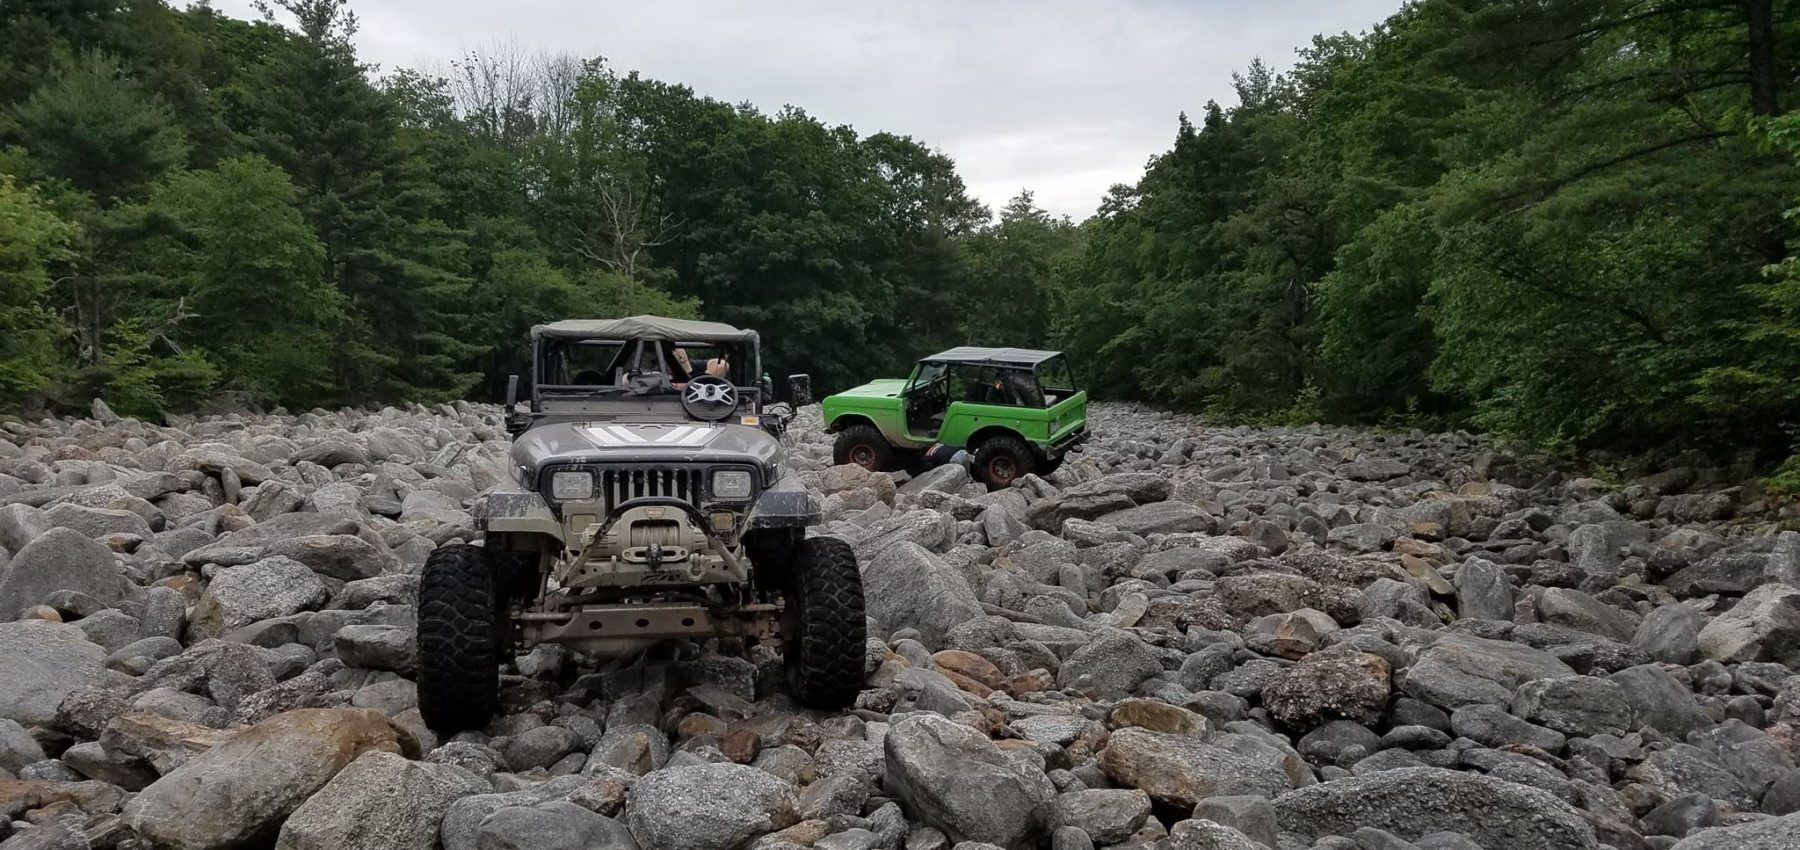 central North Carolina 4x4 on the rocks